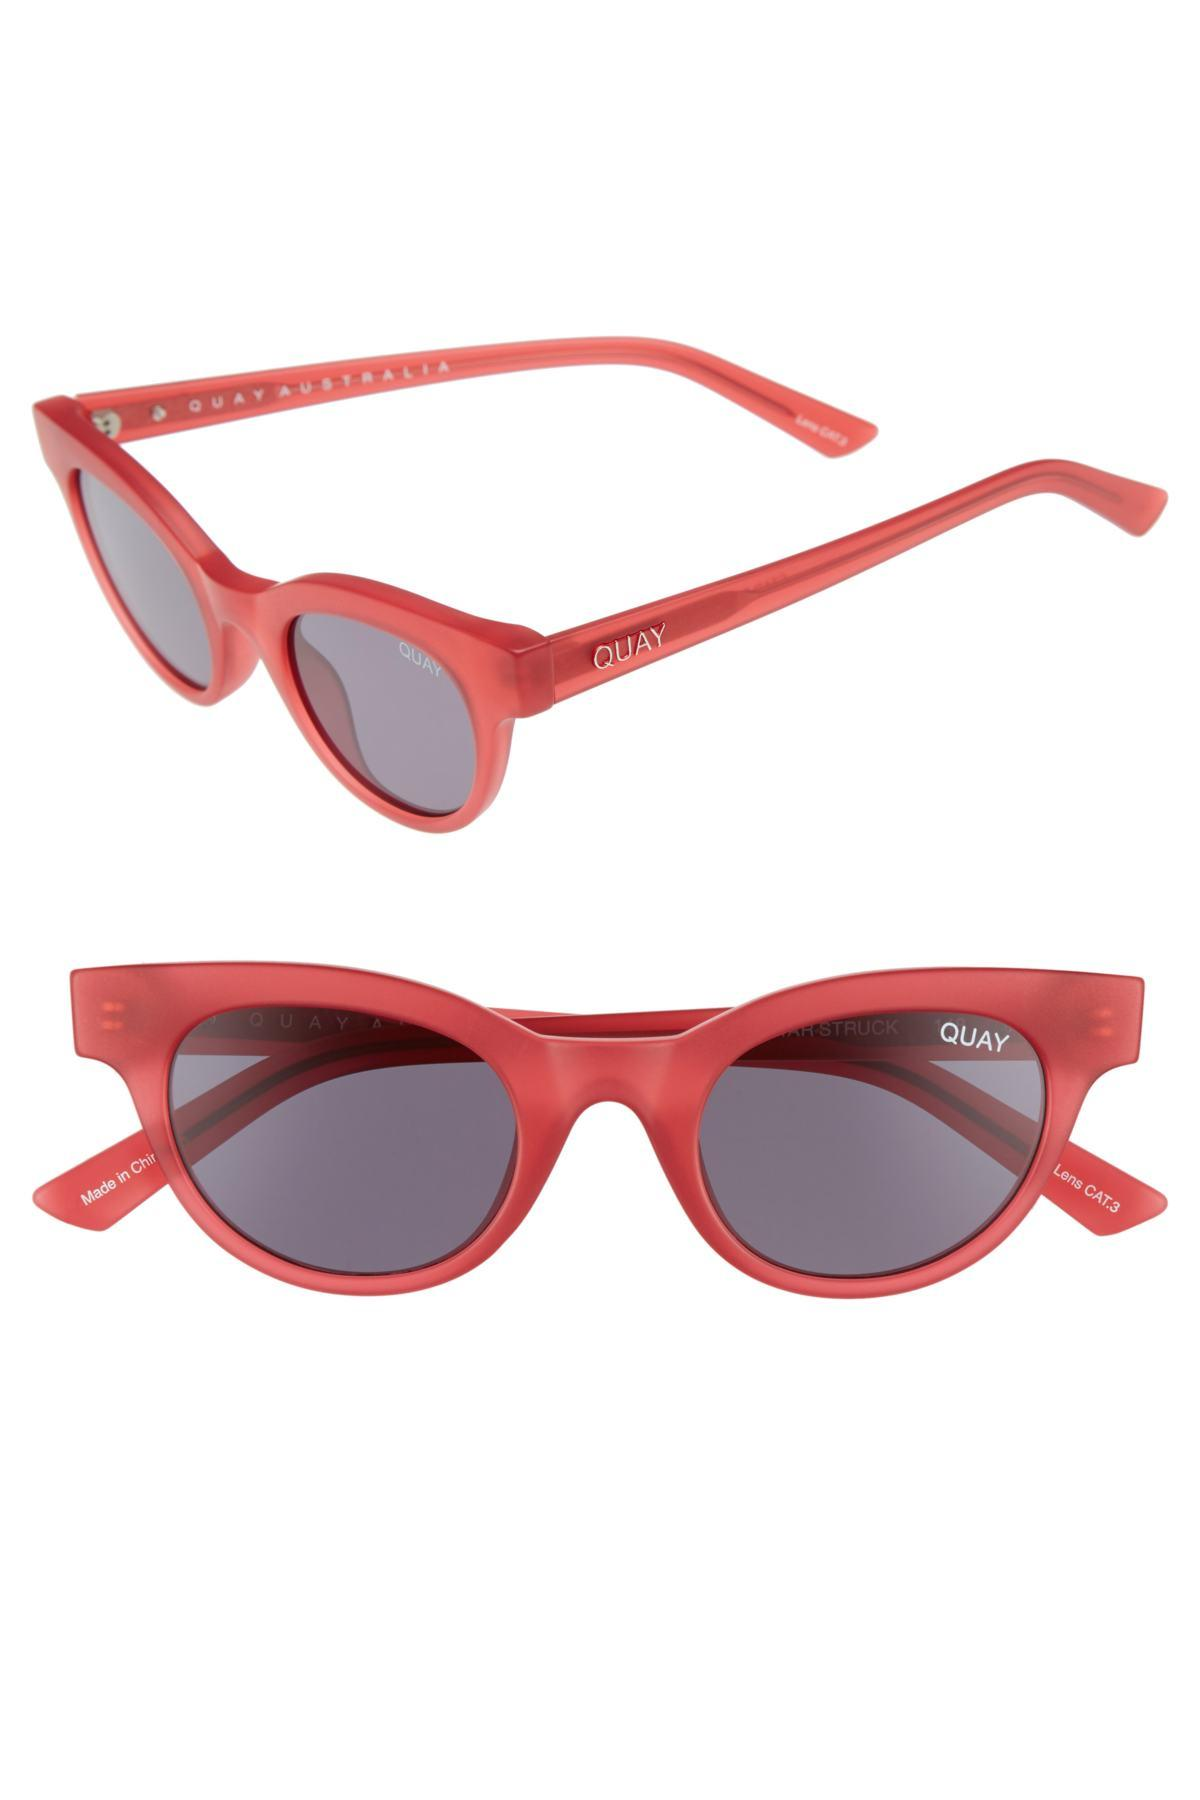 c772237a31a Lyst - Quay Starstruck 48mm Cat Eye Sunglasses in Pink